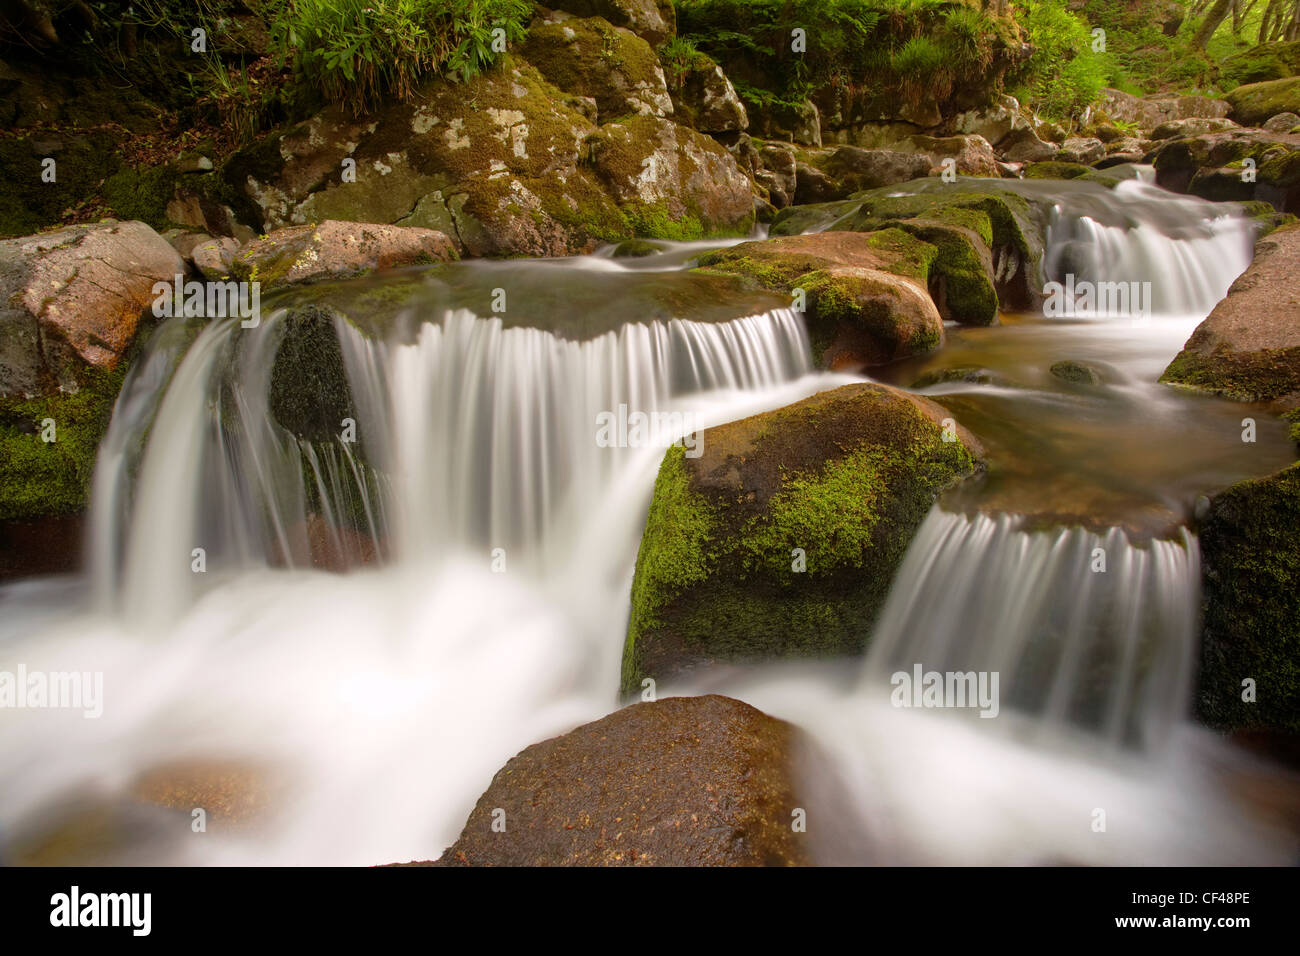 Water flowing over rocks on the River Plym at Shaugh Prior in Spring. - Stock Image